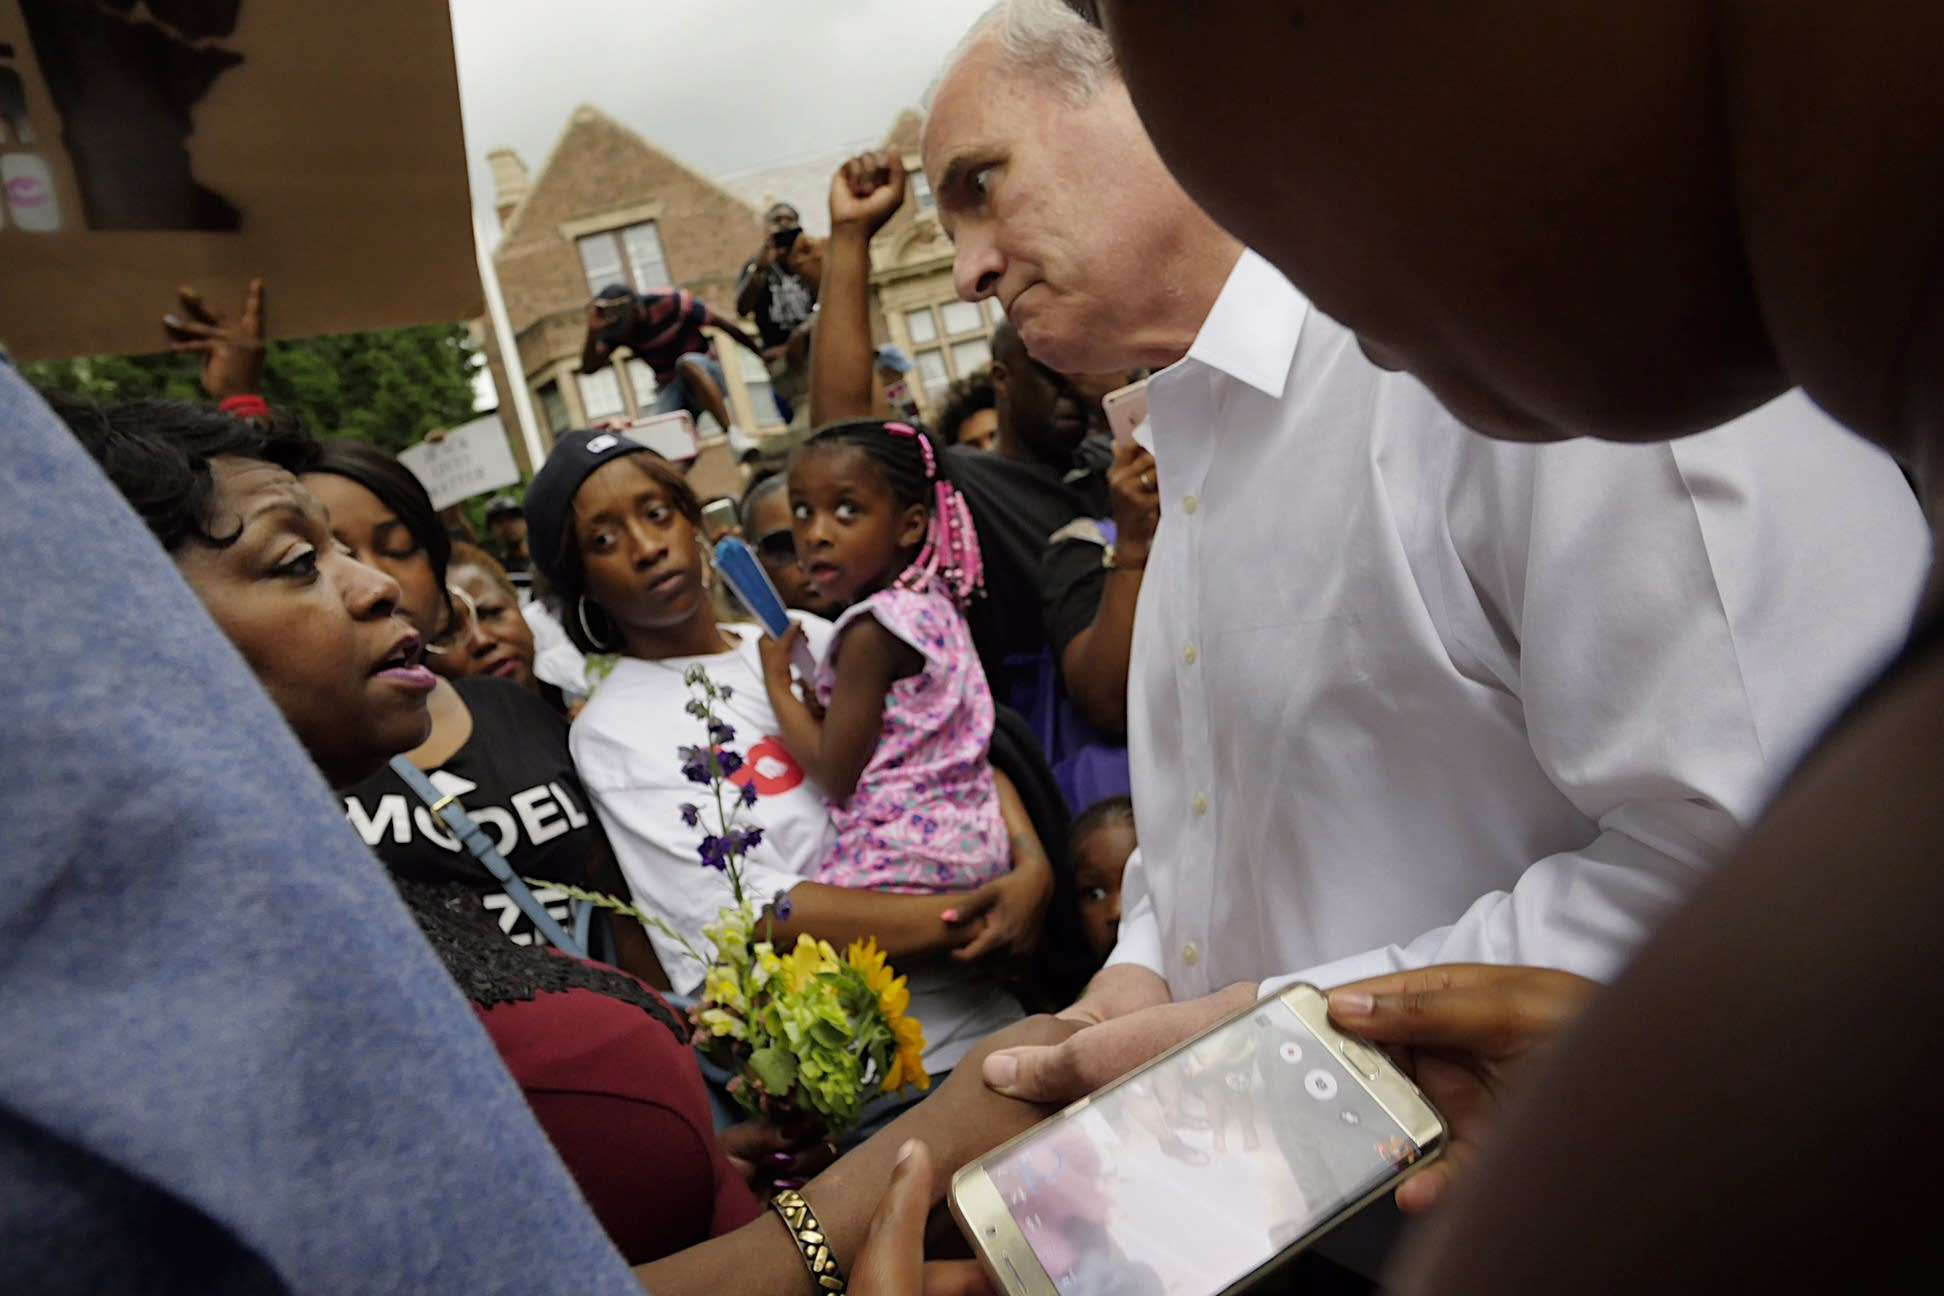 Gov. Dayton, Valerie Castile and Diamond Reynolds